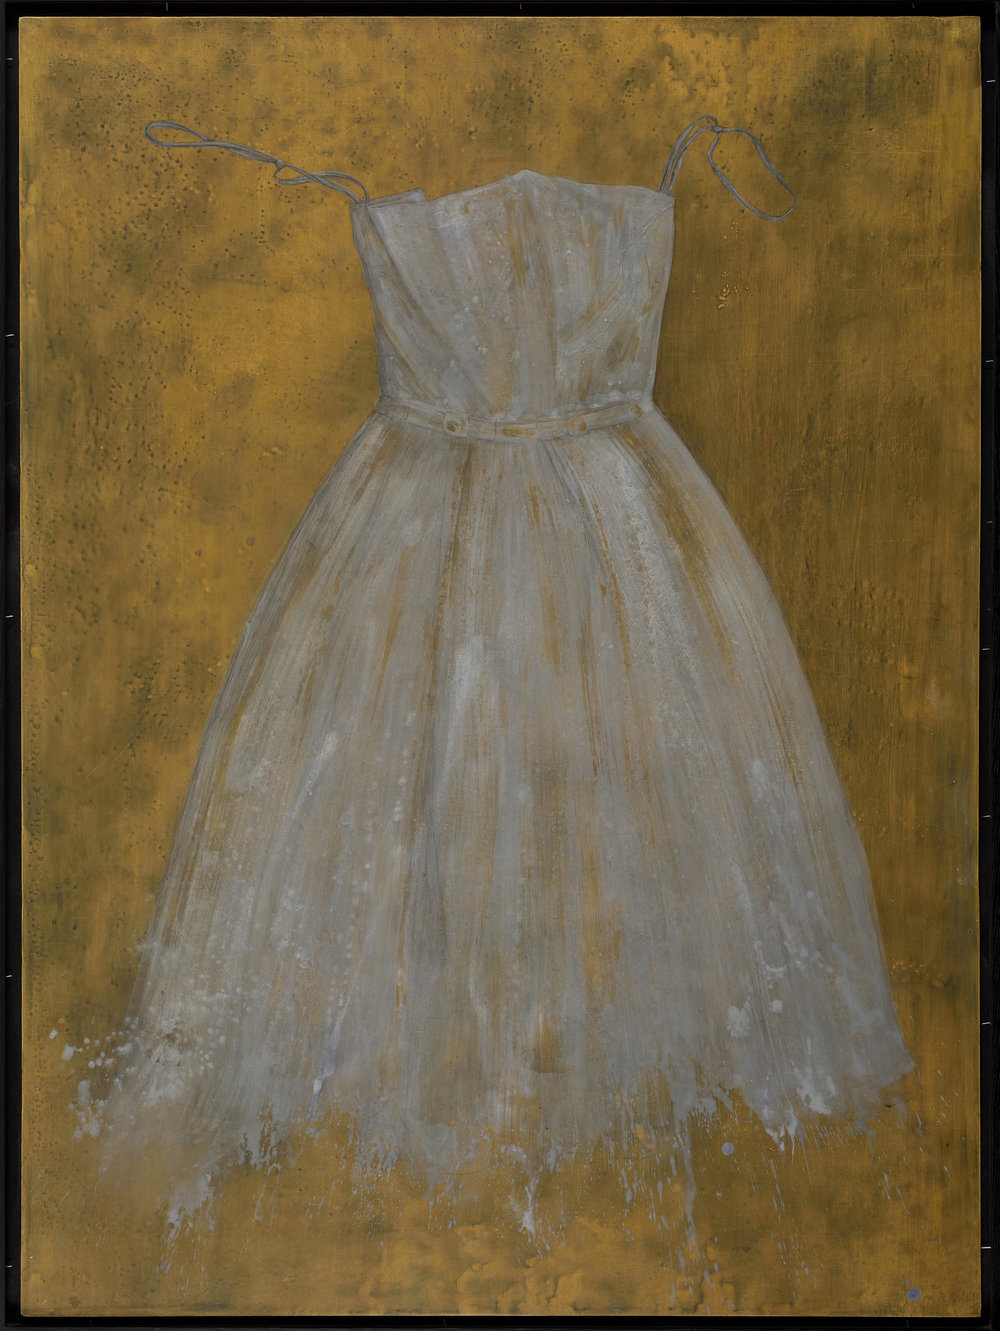 Dress II - egg tempera on gessoed panel 122 x 90 cm